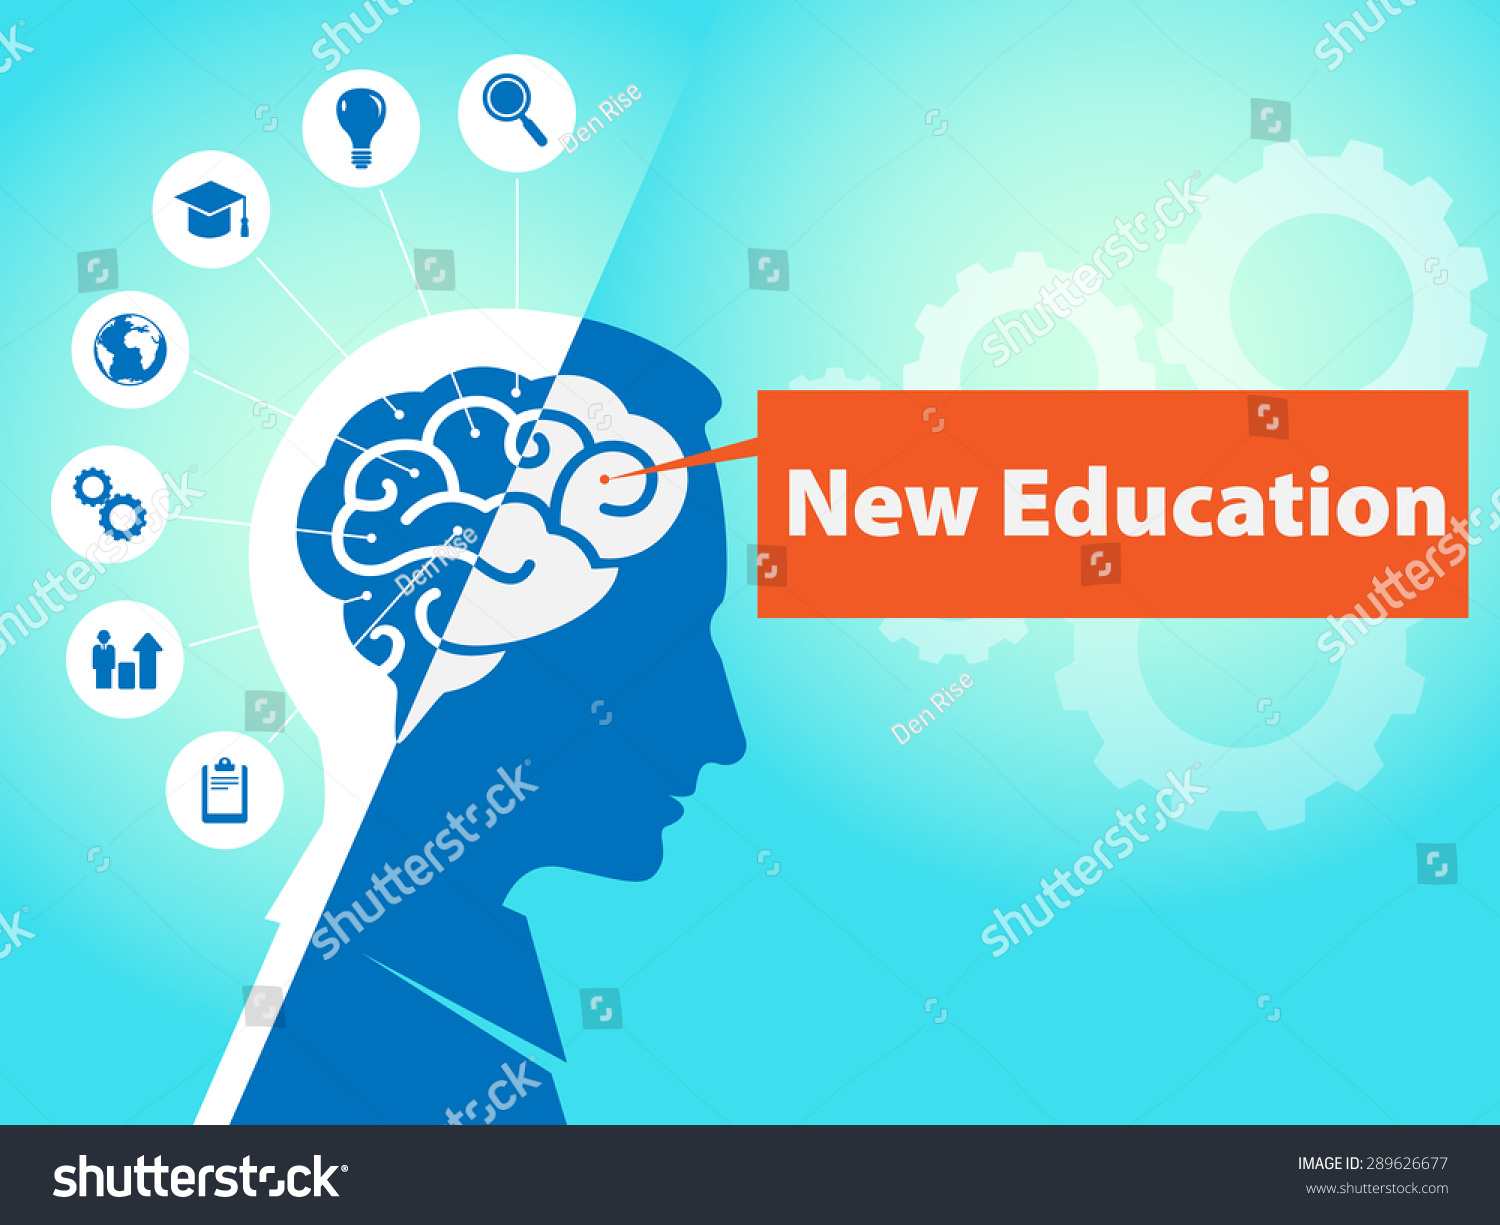 Brain icons business symbols text new stock illustration 289626677 brain with icons and business symbols and text new education 2d flat design business biocorpaavc Images